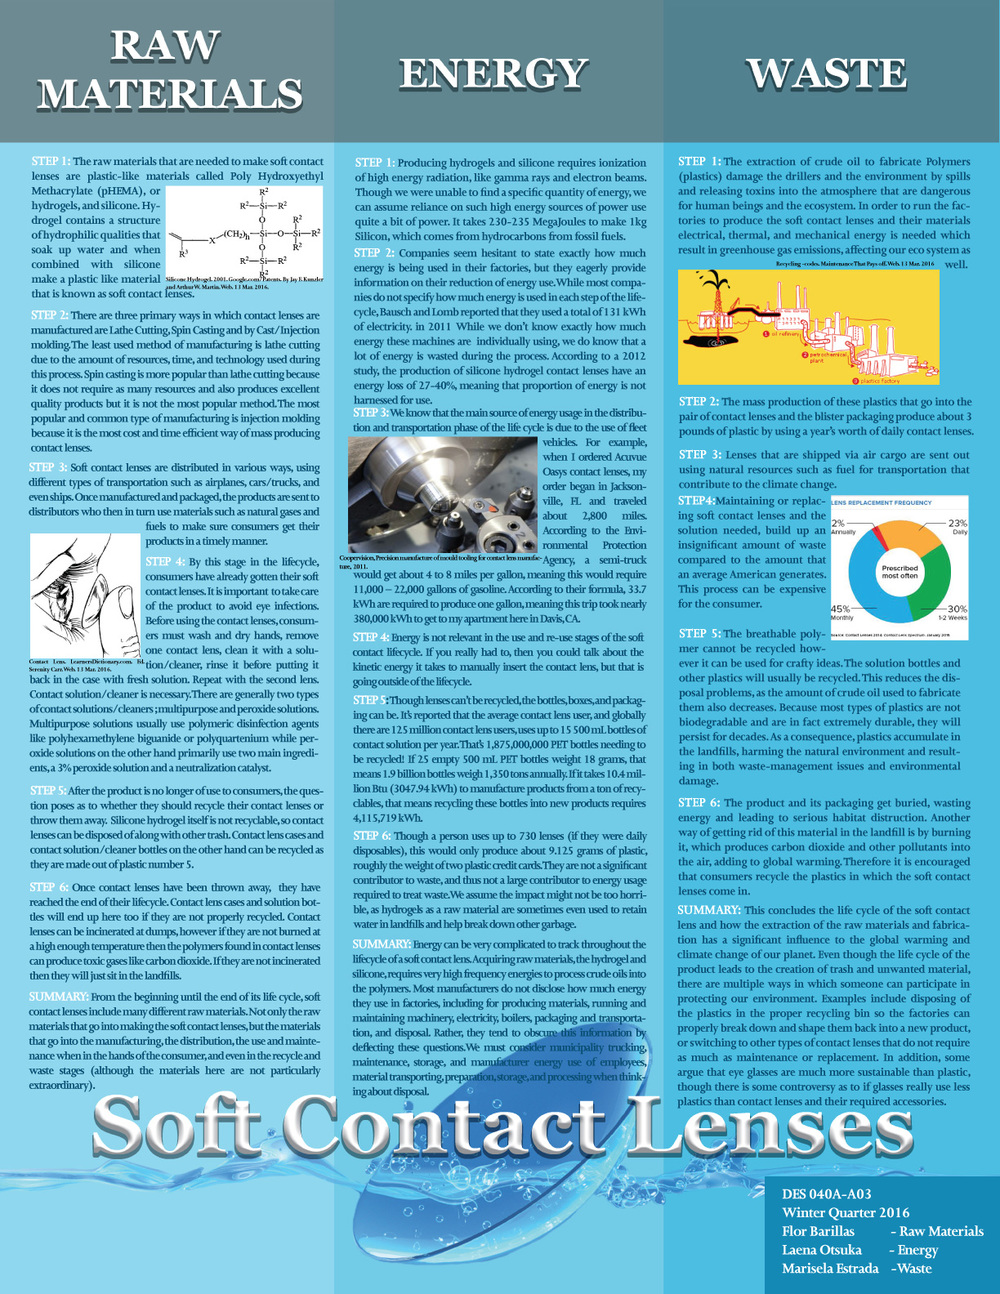 Soft Contact Lenses